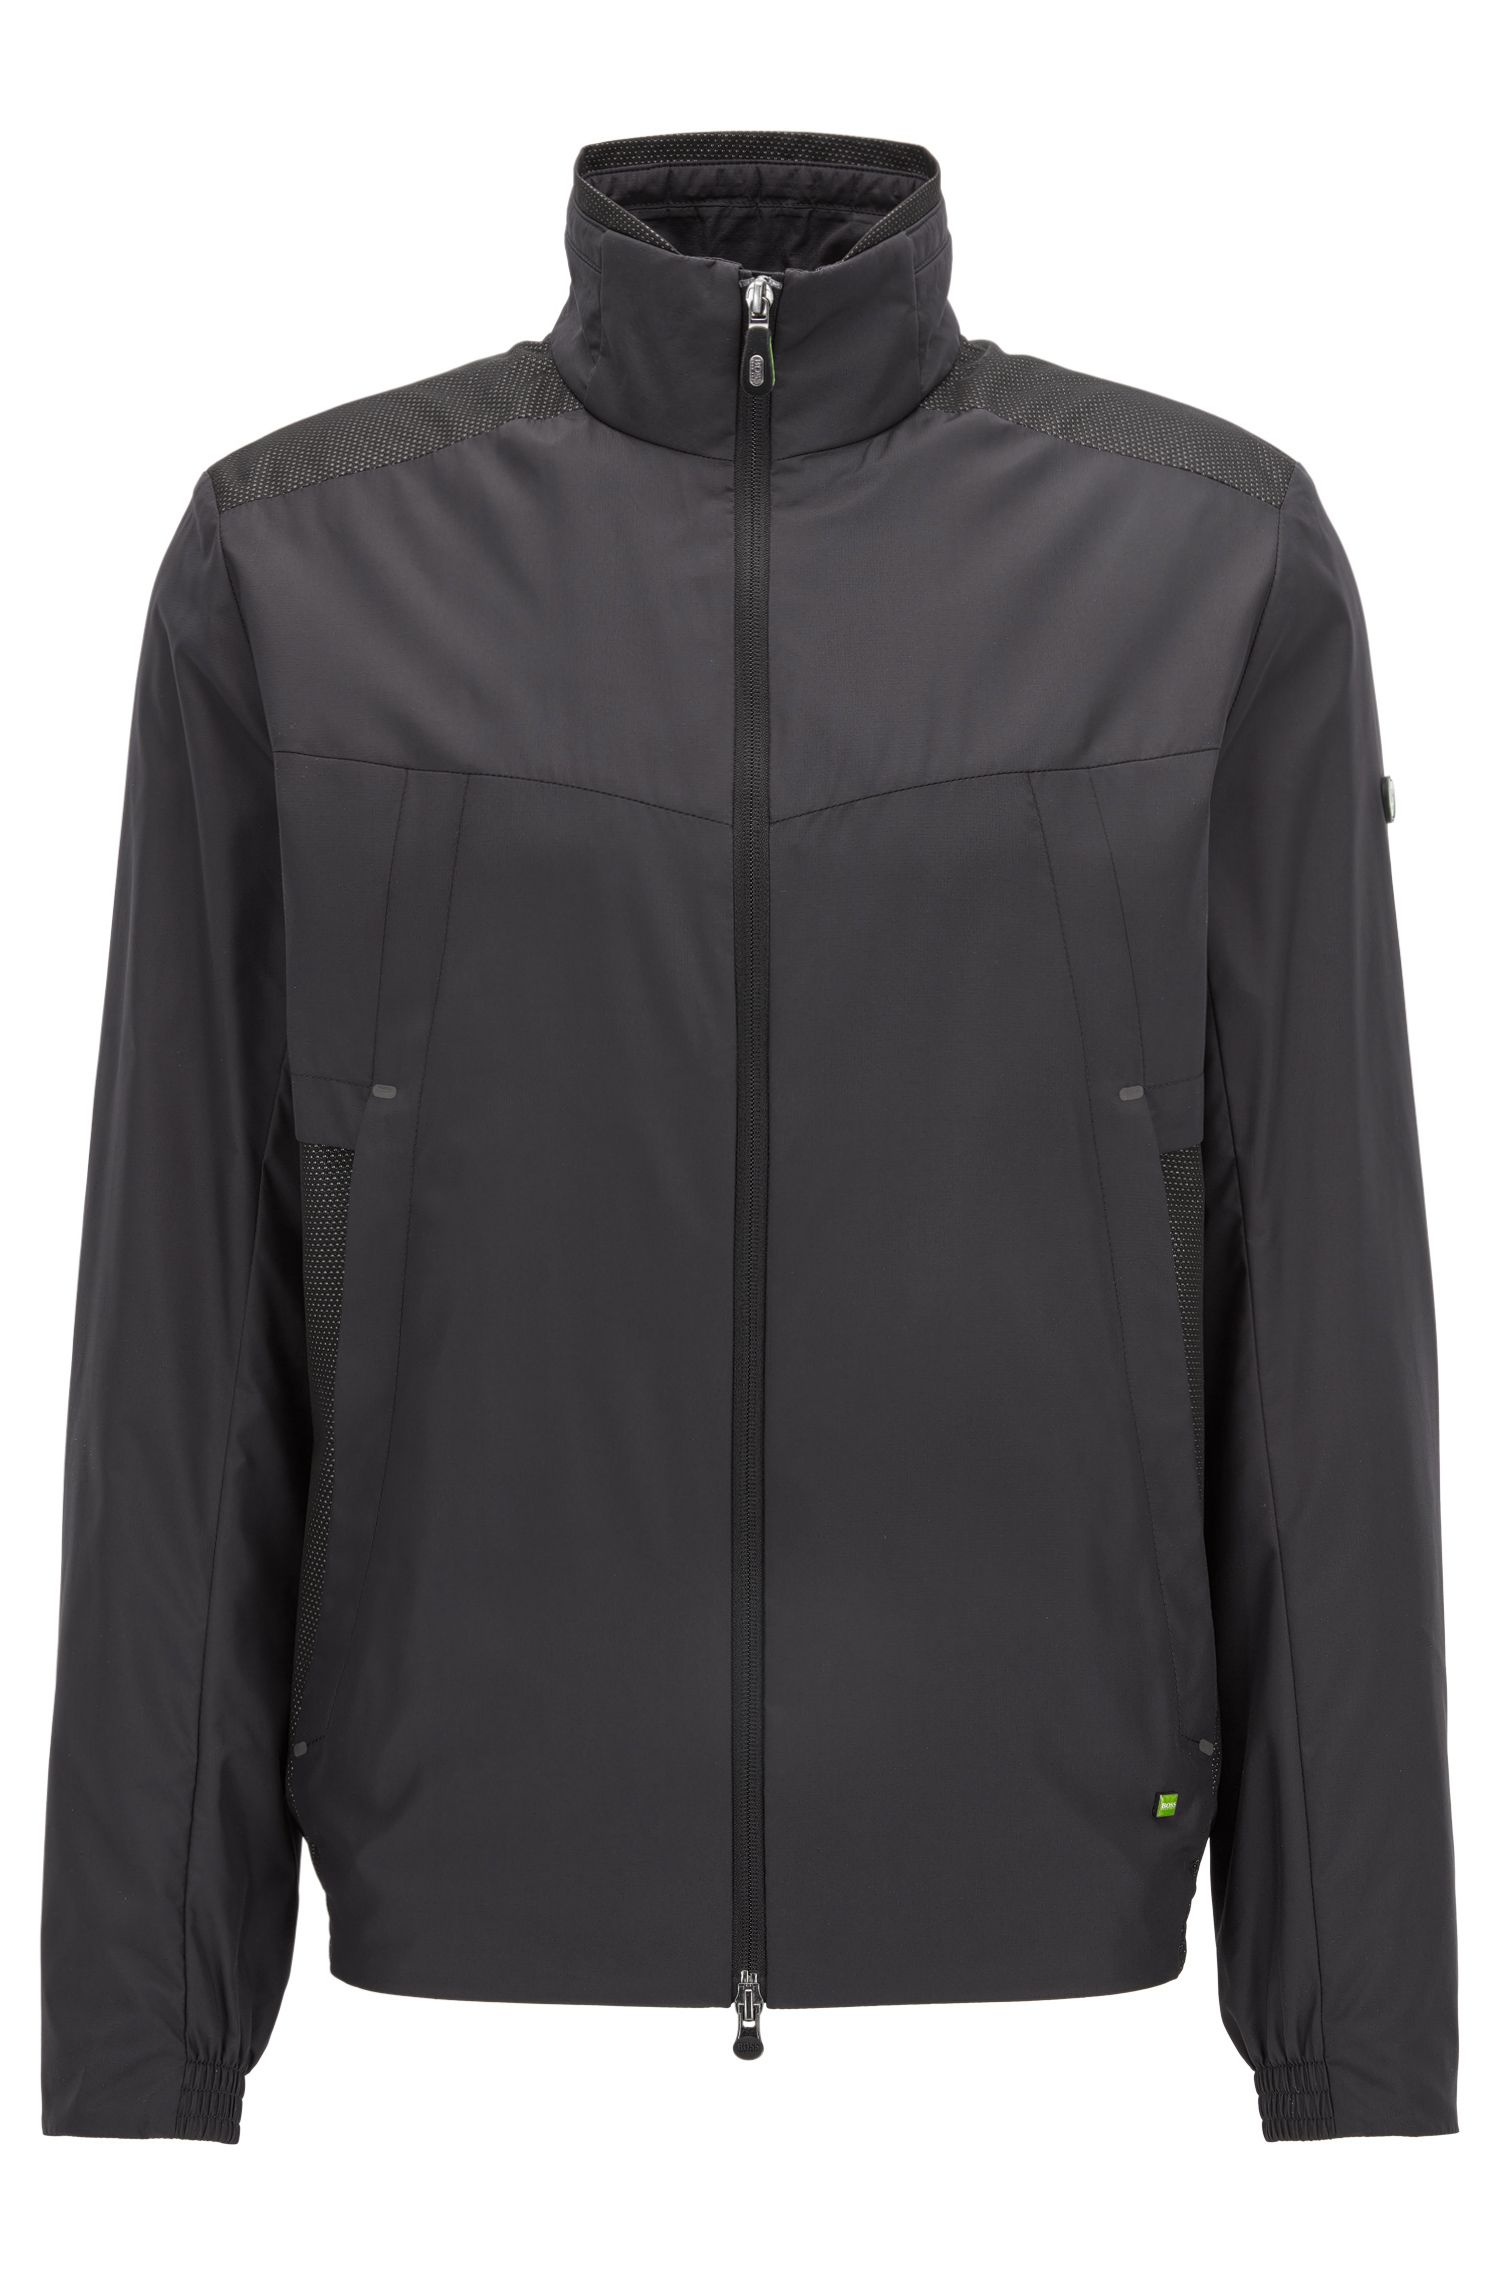 Packable regular-fit jacket in technical fabric